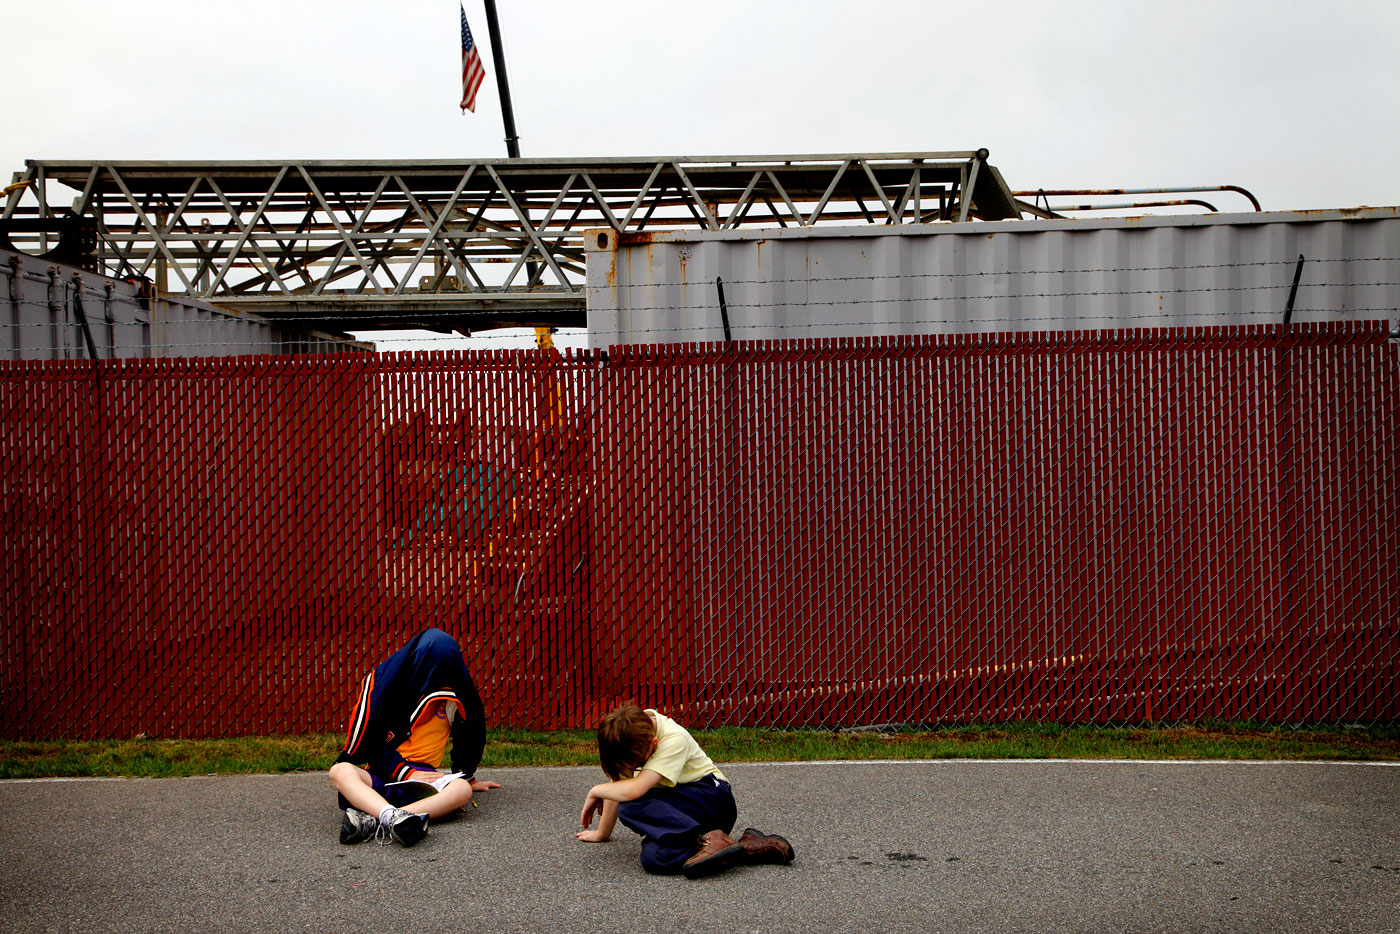 Louie D'Angelo, 11, and his brother Andy, 8, wait for the gates to open for a Mitt Romney campaign event in Portsmouth, Va., on Thursday, May 3, 2012. {quote}We pulled them out of school cause this is history,{quote} their mother said.